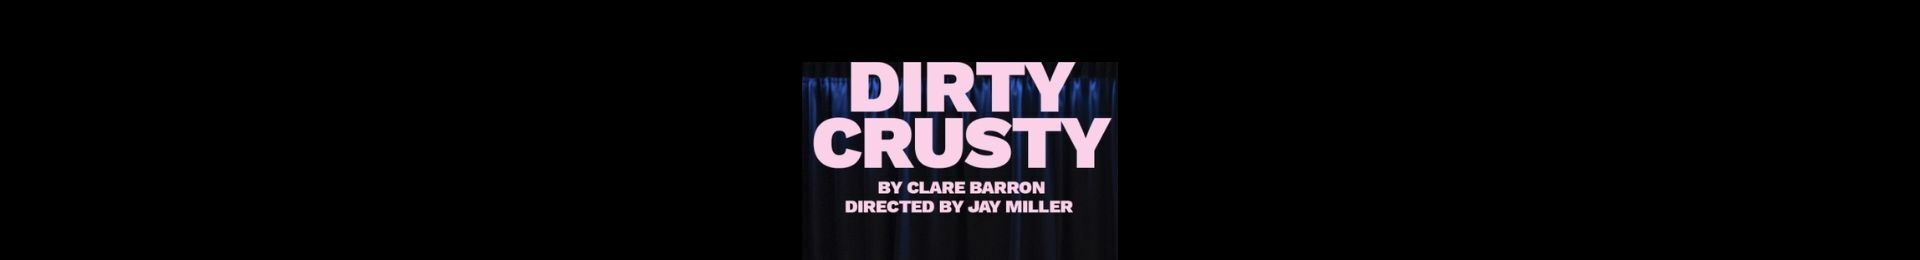 Dirty Crusty banner image